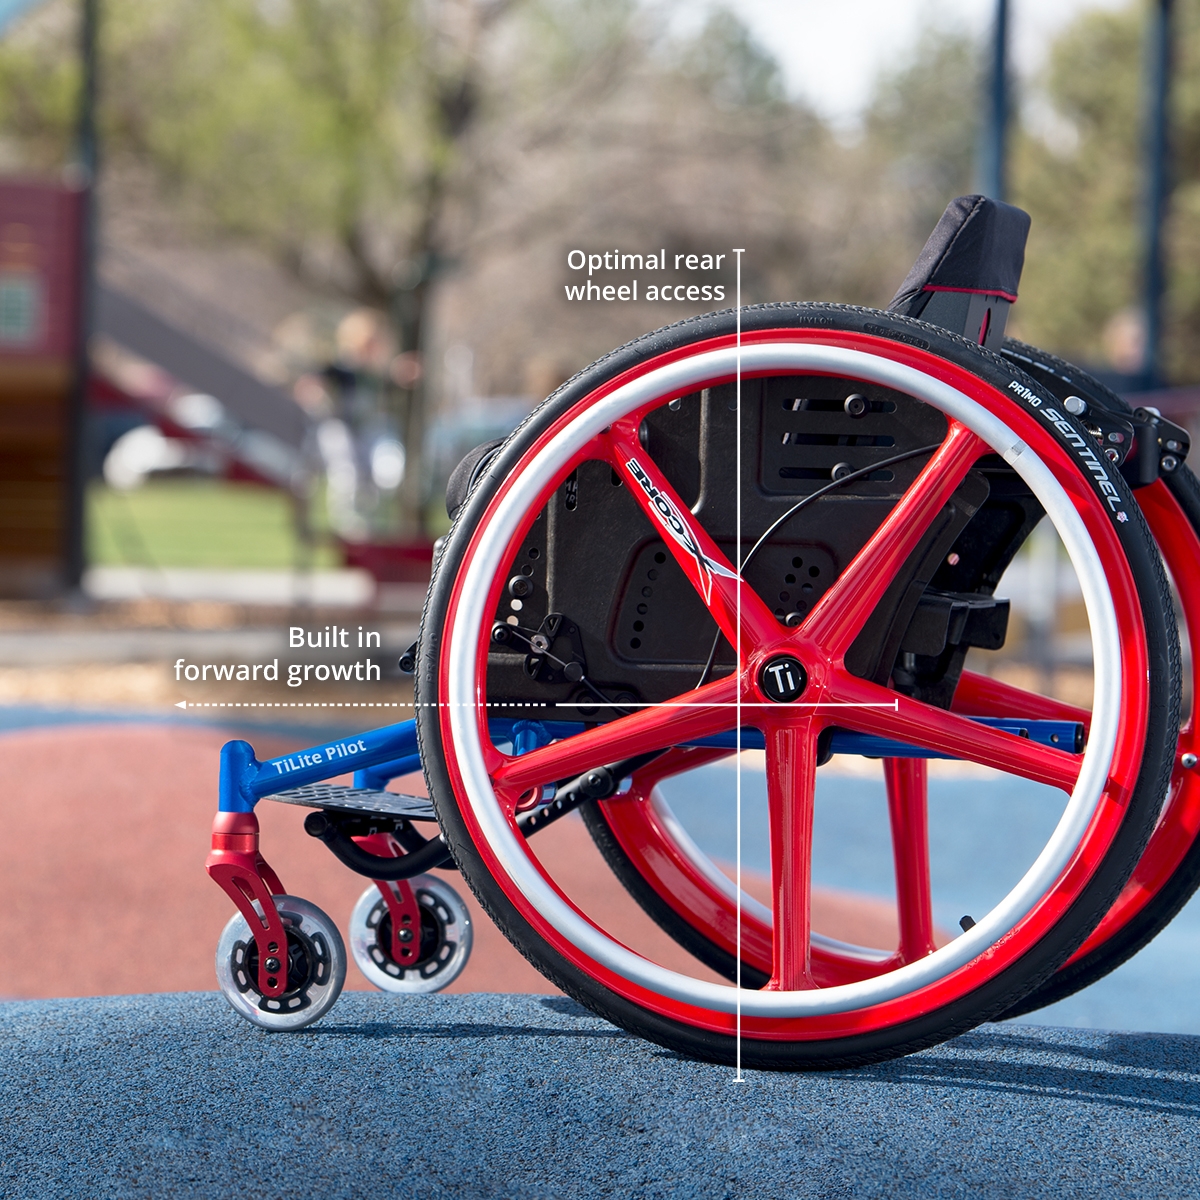 TiLite Pilot paediatric wheelchair showing growth adjustments